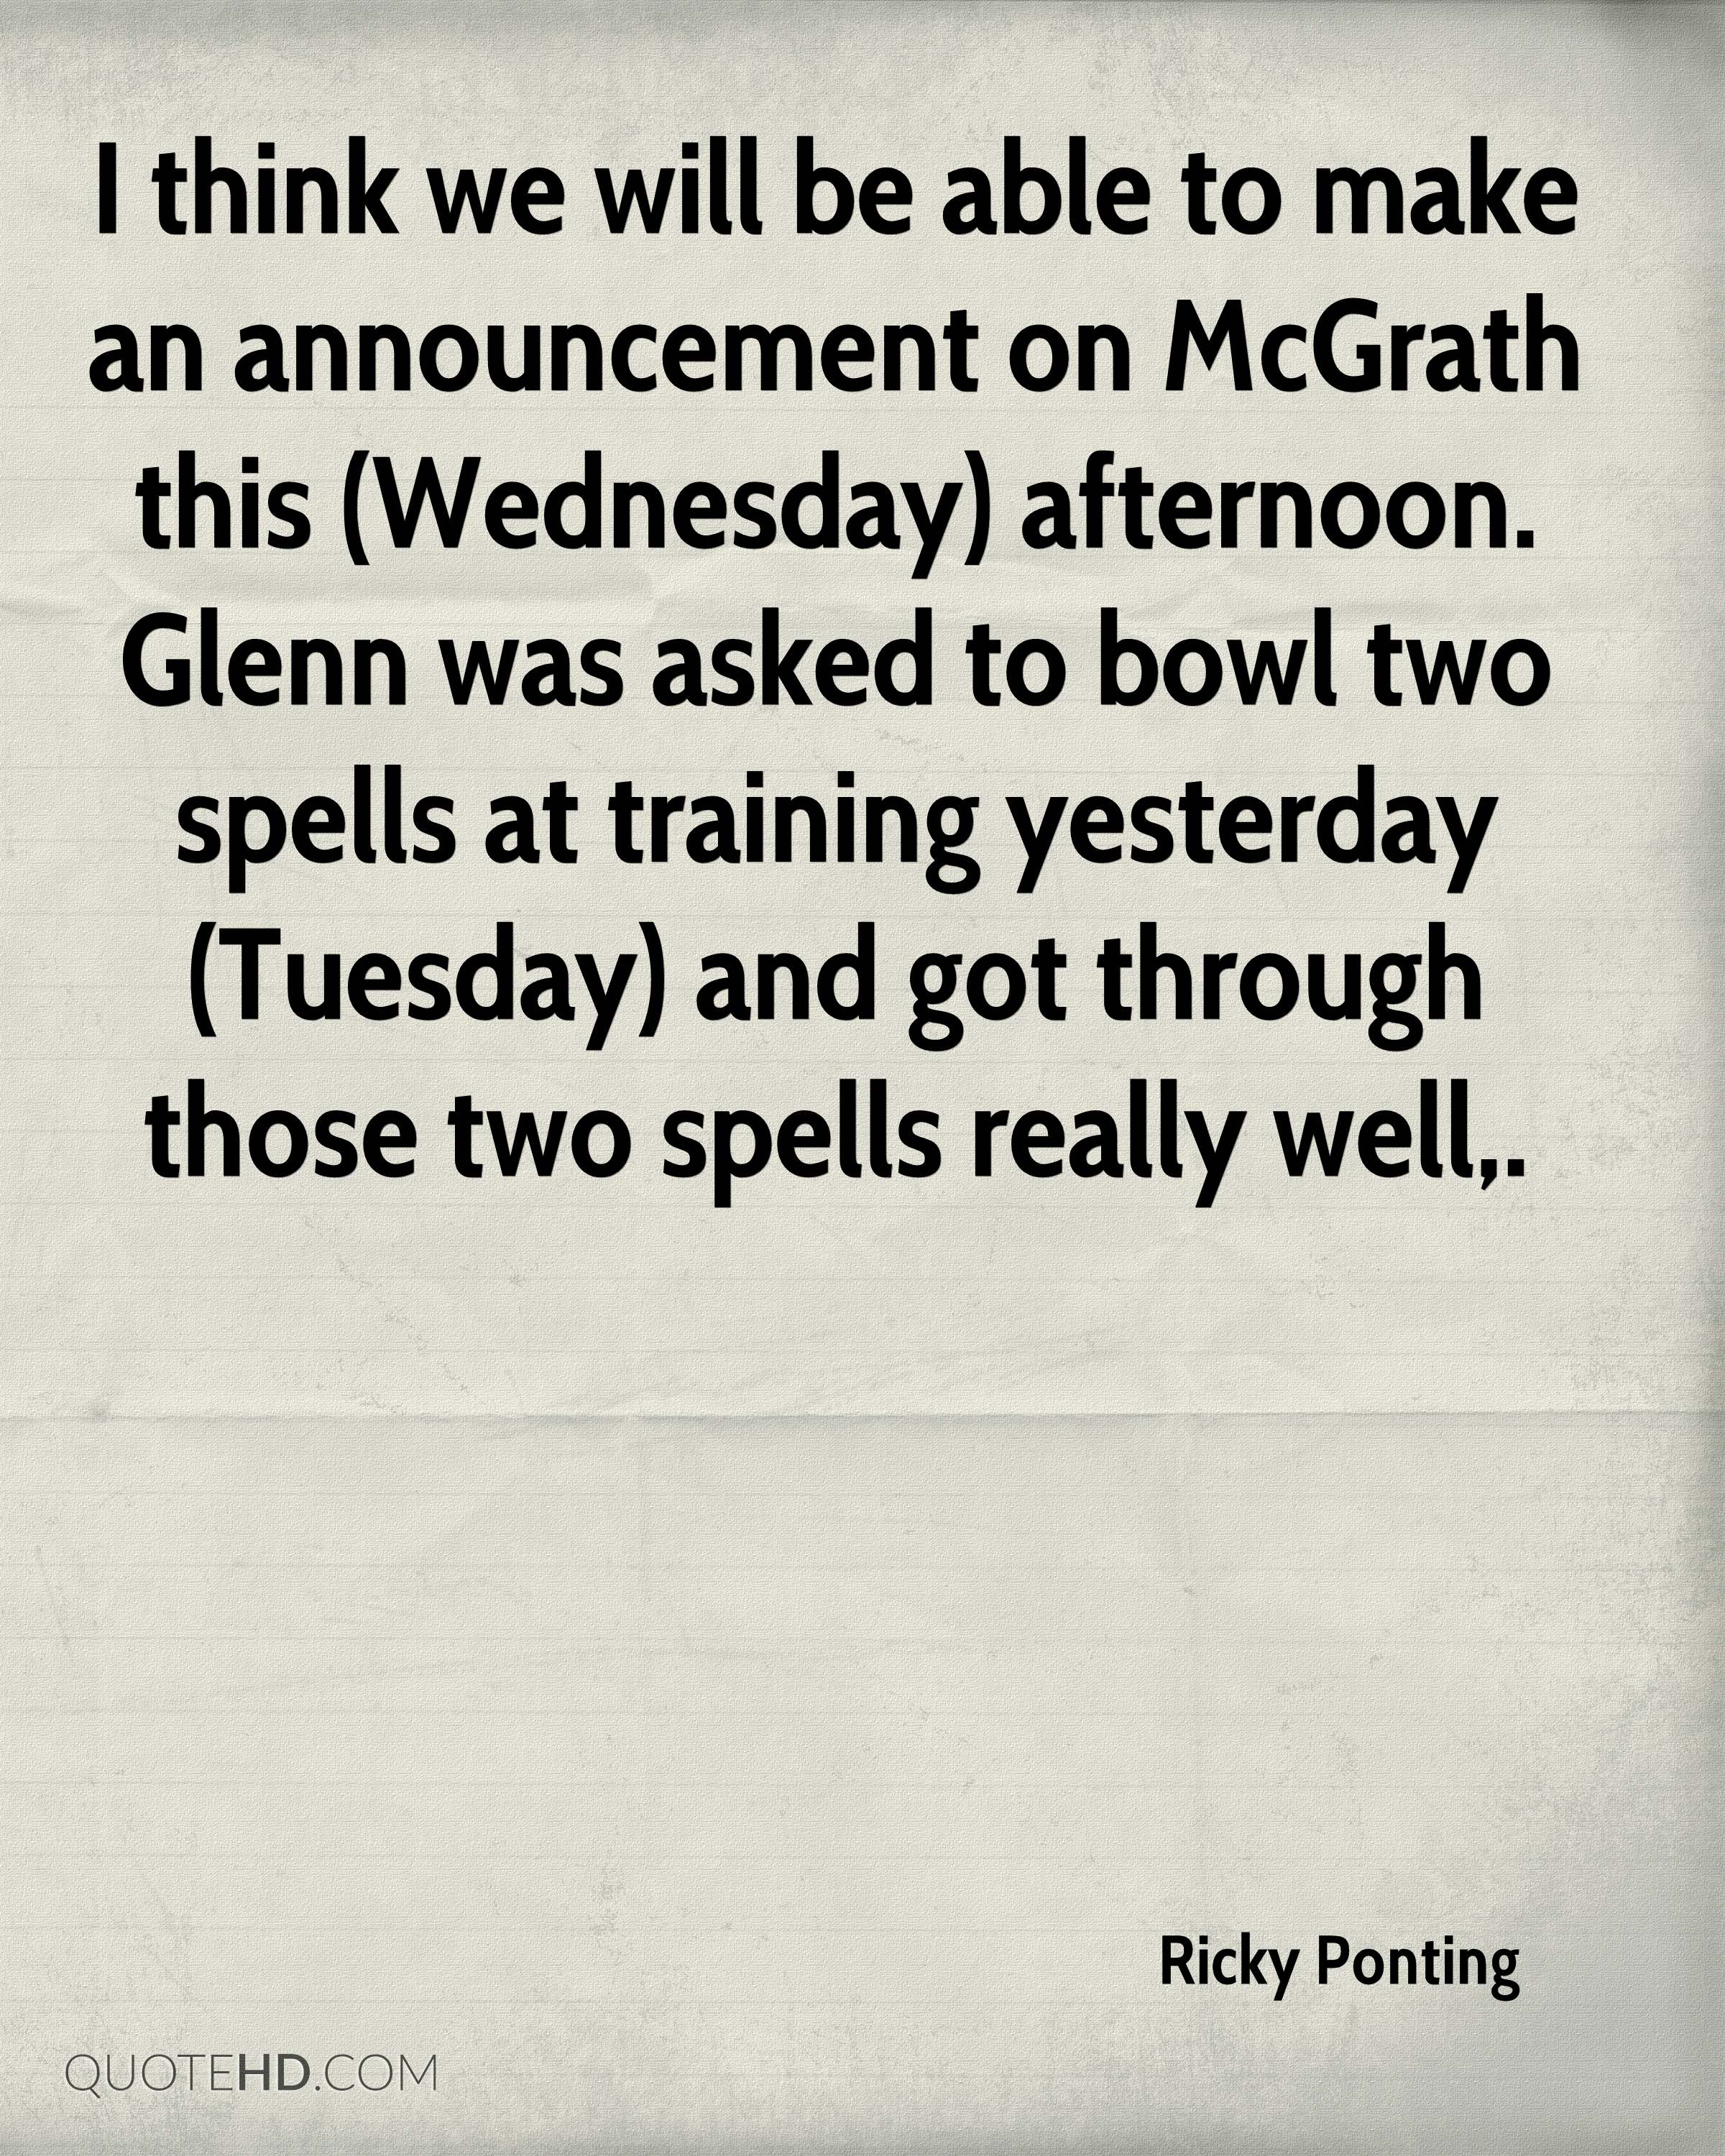 I think we will be able to make an announcement on McGrath this (Wednesday) afternoon. Glenn was asked to bowl two spells at training yesterday (Tuesday) and got through those two spells really well.